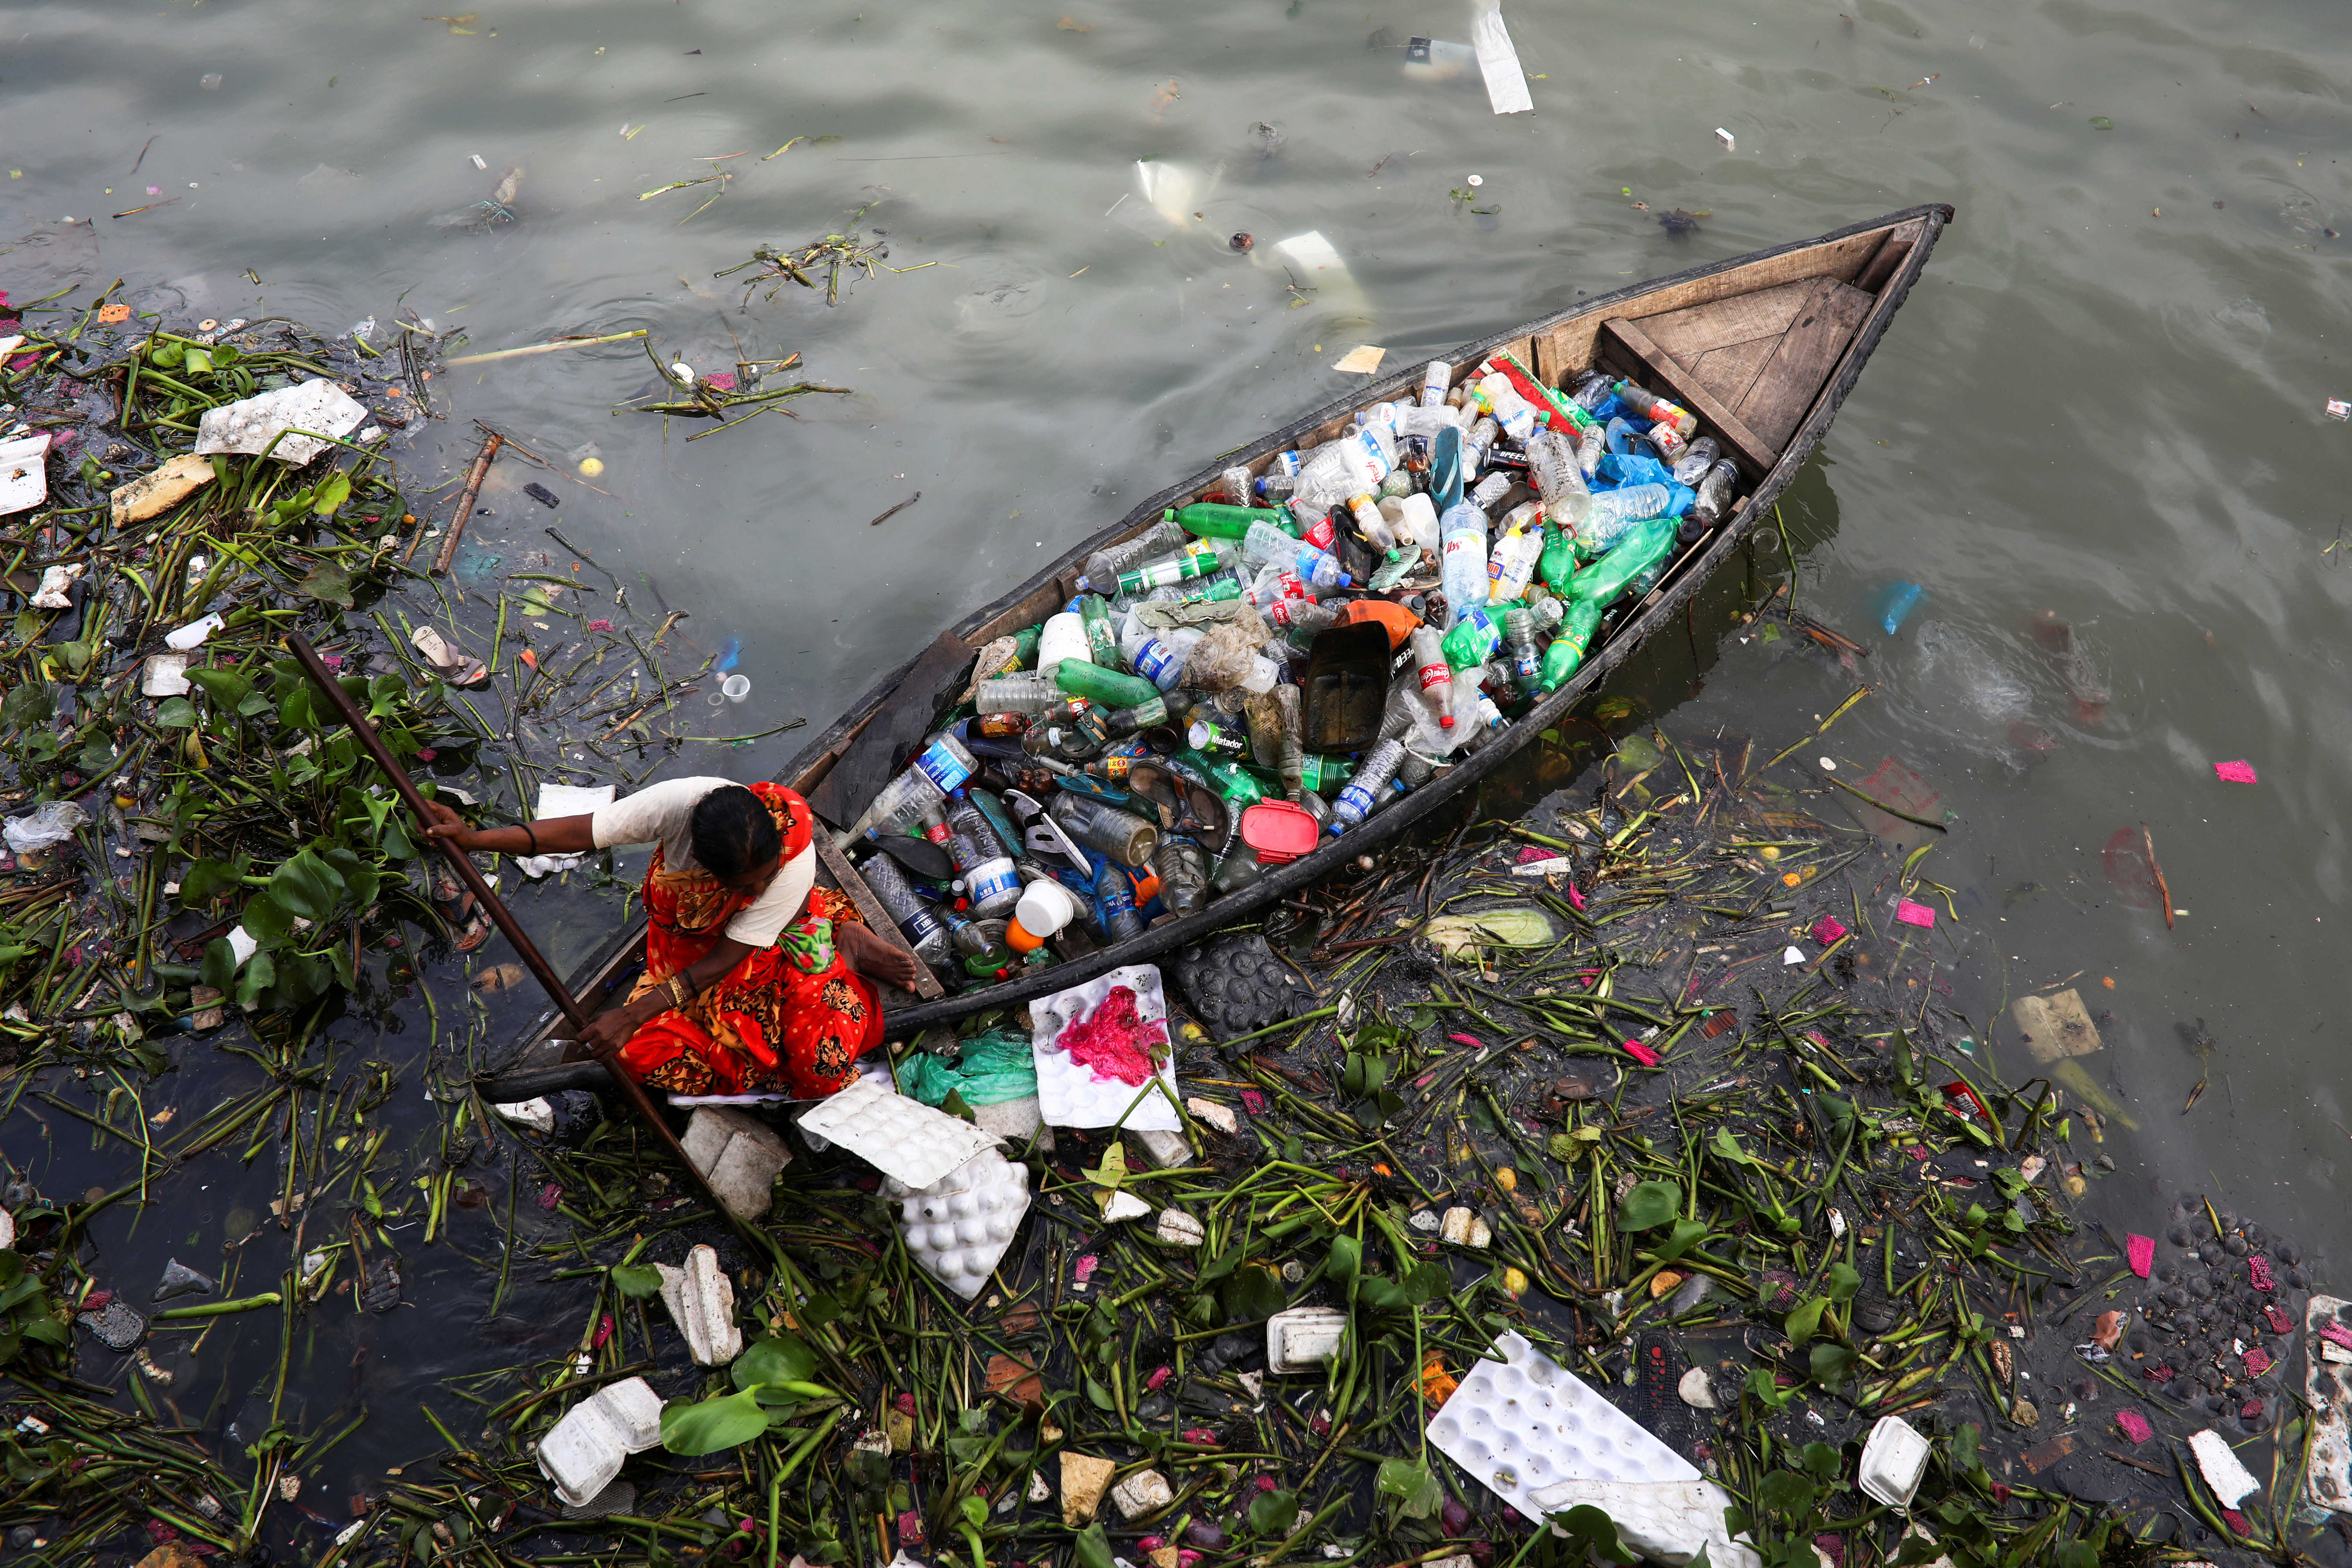 A woman collects plastic waste from the Buriganga river in Dhaka, Bangladesh, September 16, 2020. REUTERS/Mohammad Ponir Hossain     TPX IMAGES OF THE DAY - RC2NZI9KU4BA